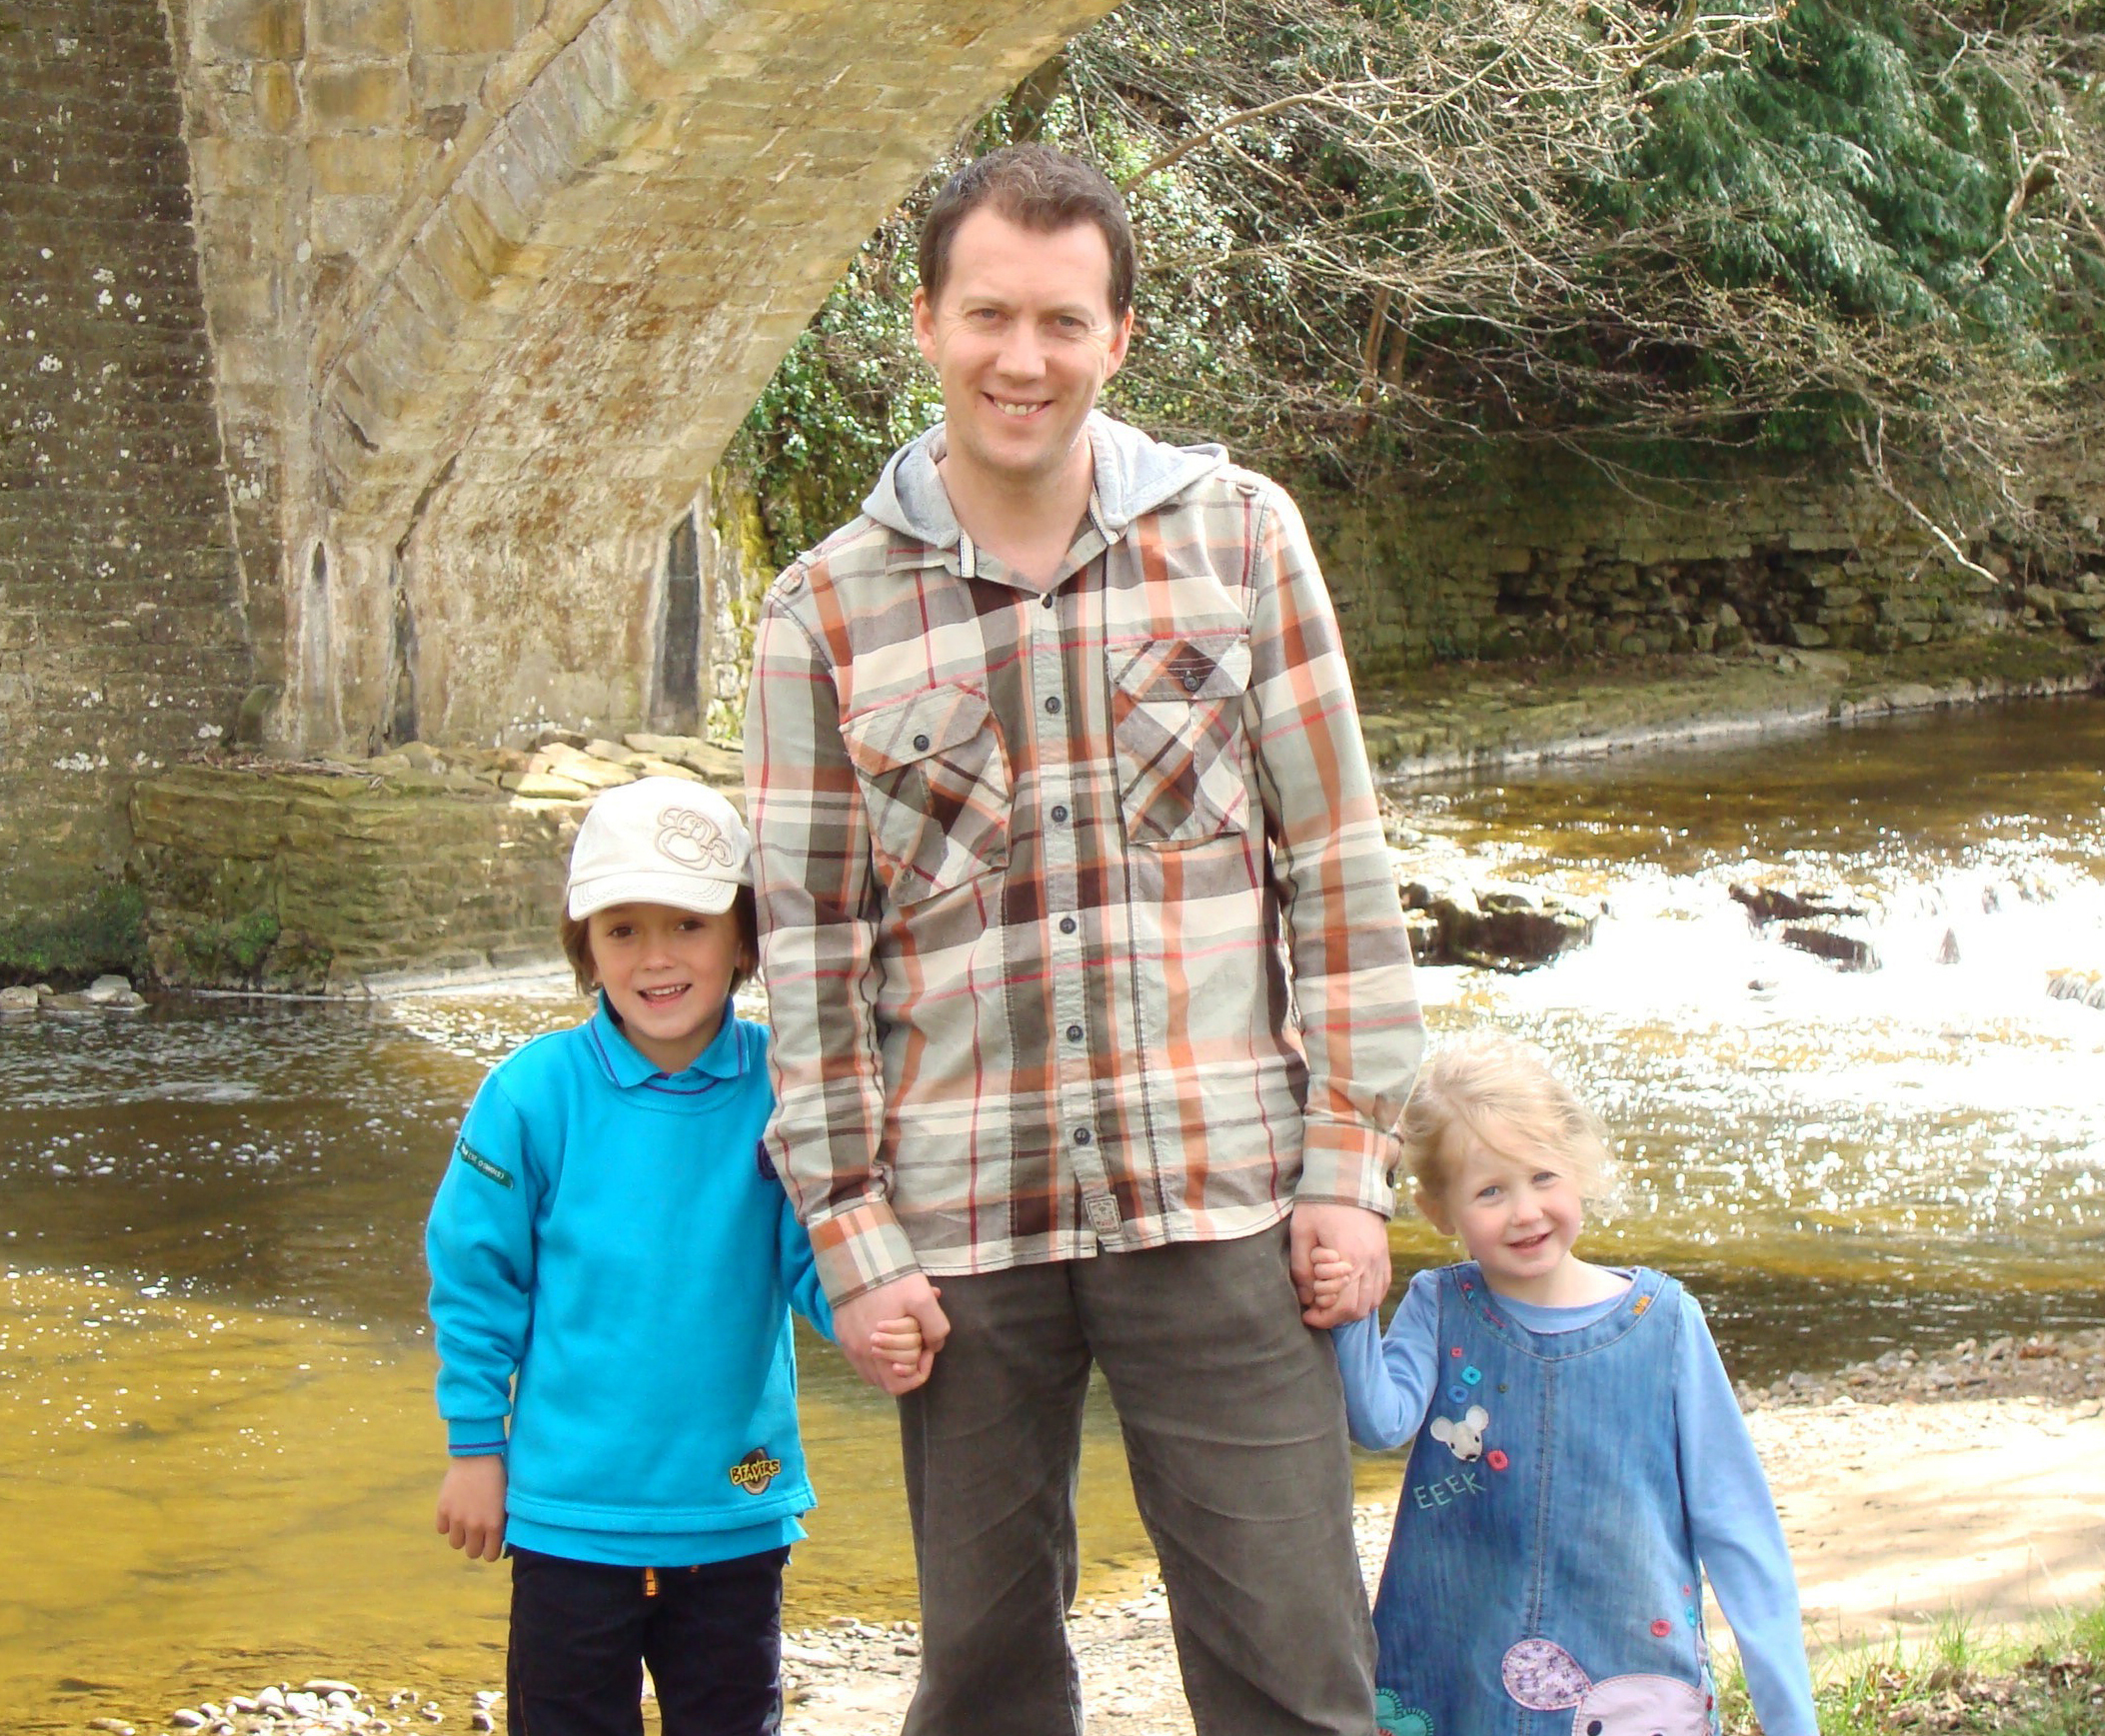 Simon and Kids, creator of the Bang On Customised Children's Books